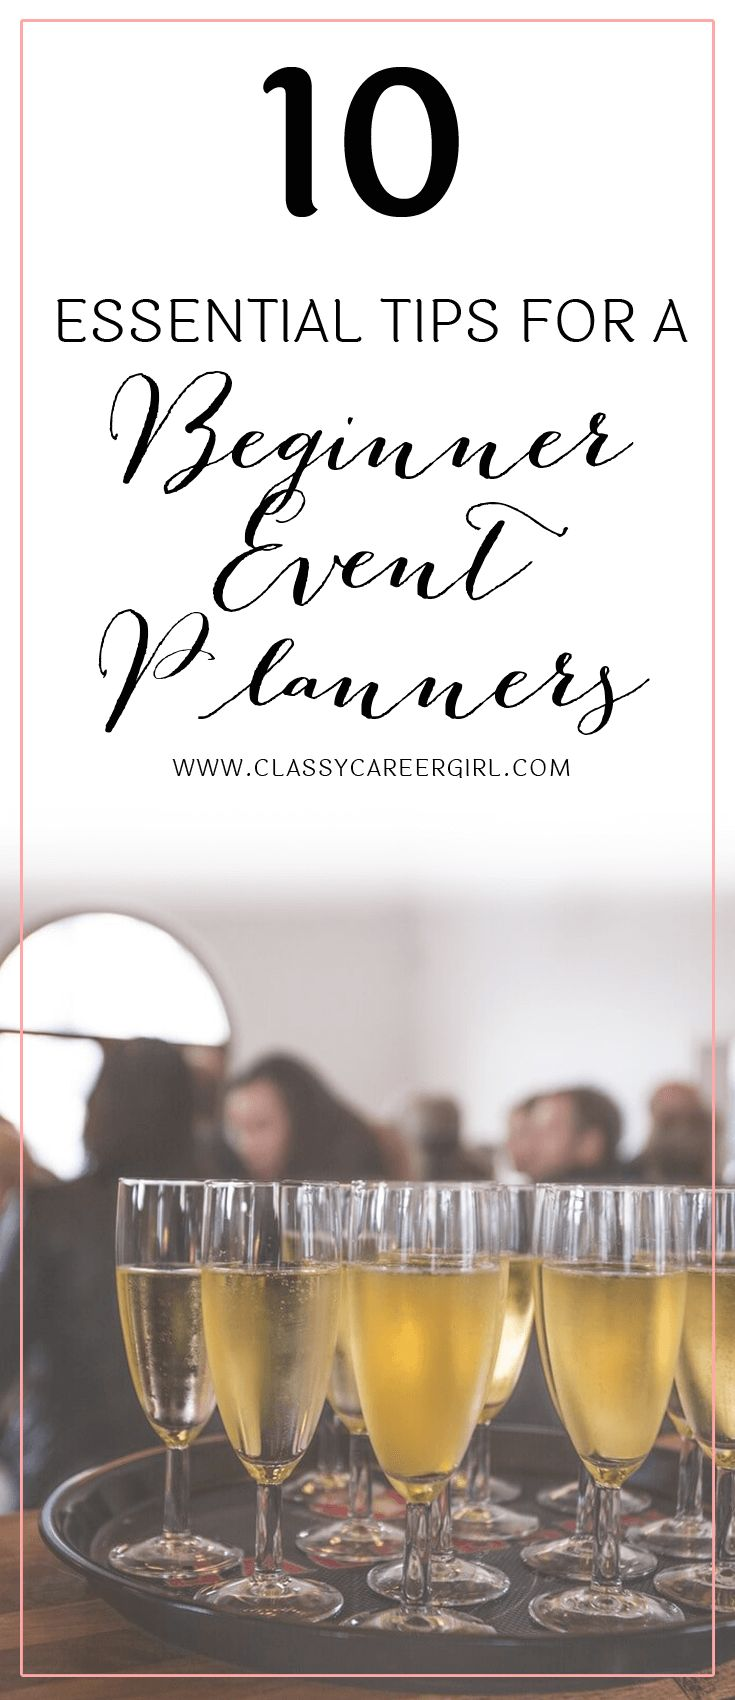 10 Essential Tips for a Beginner Event Planner